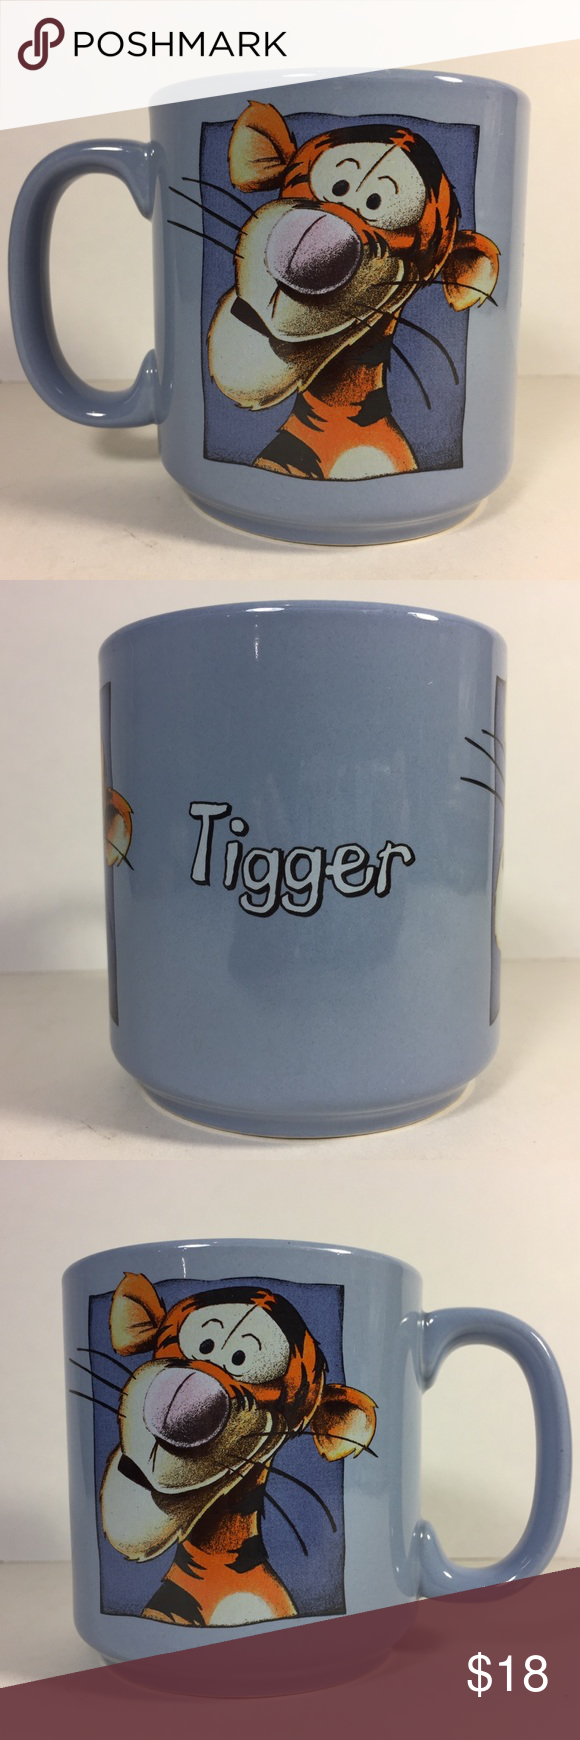 Vintage Tigger Winnie the Pooh Disney Coffee Mug Gently loved. No cracks, chips, or crazing. Smoke free. Ships carefully packaged and boxed immediately. Let me know if you have any questions.  Great gift for mom, dad, sister, brother, Christmas, Halloween, Birthday, and Thanksgiving. Disney Kitchen Coffee & Tea Accessories #disneycoffeemugs